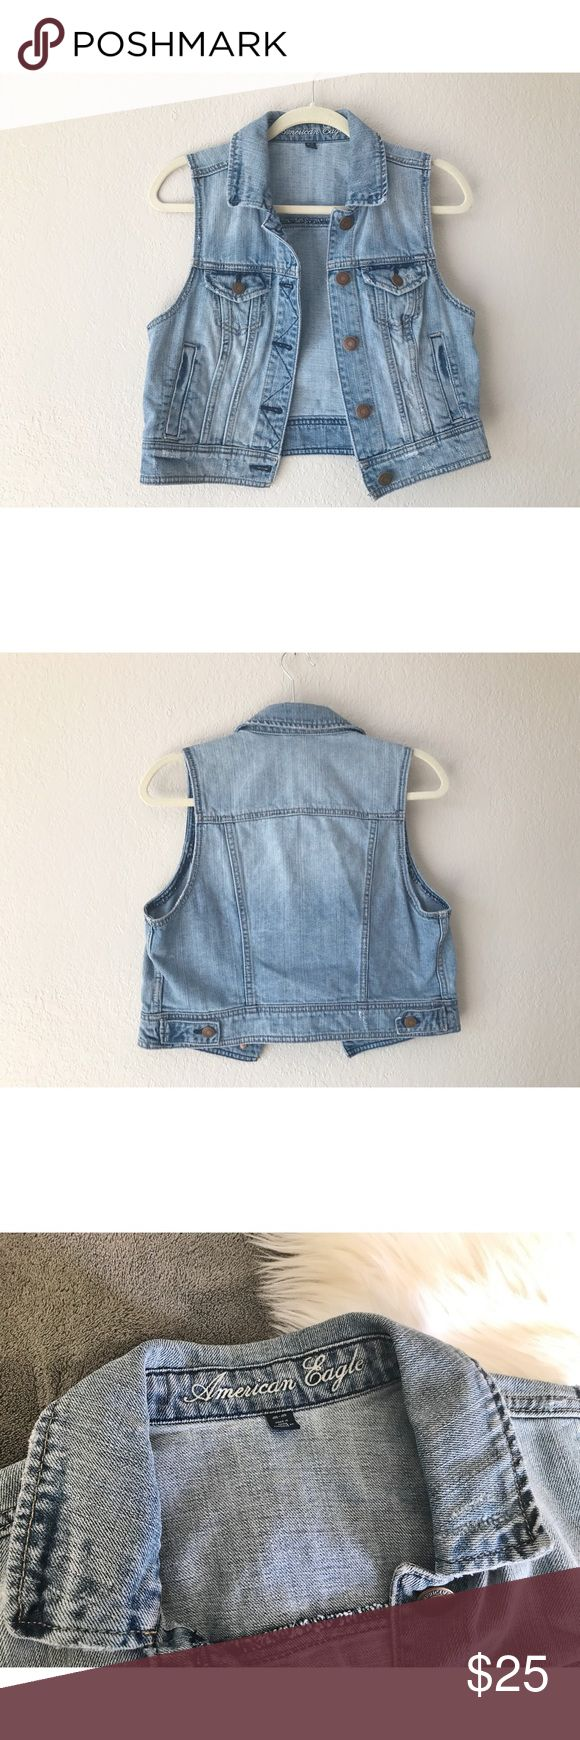 🌿American Eagle // Jean Vest 🌿 American Eagle // soft broken in jean vest// light denim color // 💯 cotton // true to size medium// 17' inches from shoulder to bottom of vest 🌿 American Eagle Outfitters Jackets & Coats Vests